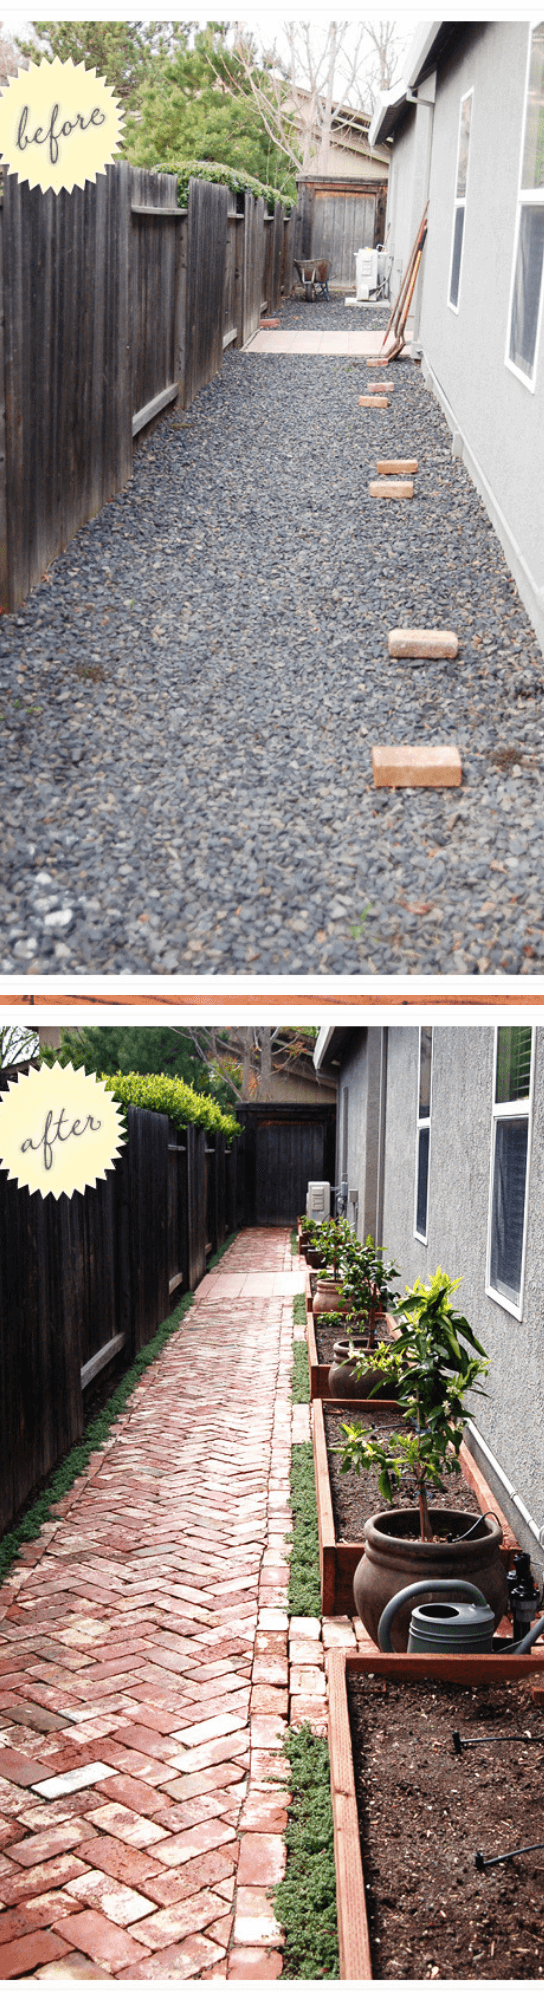 side yard: gravel to garden